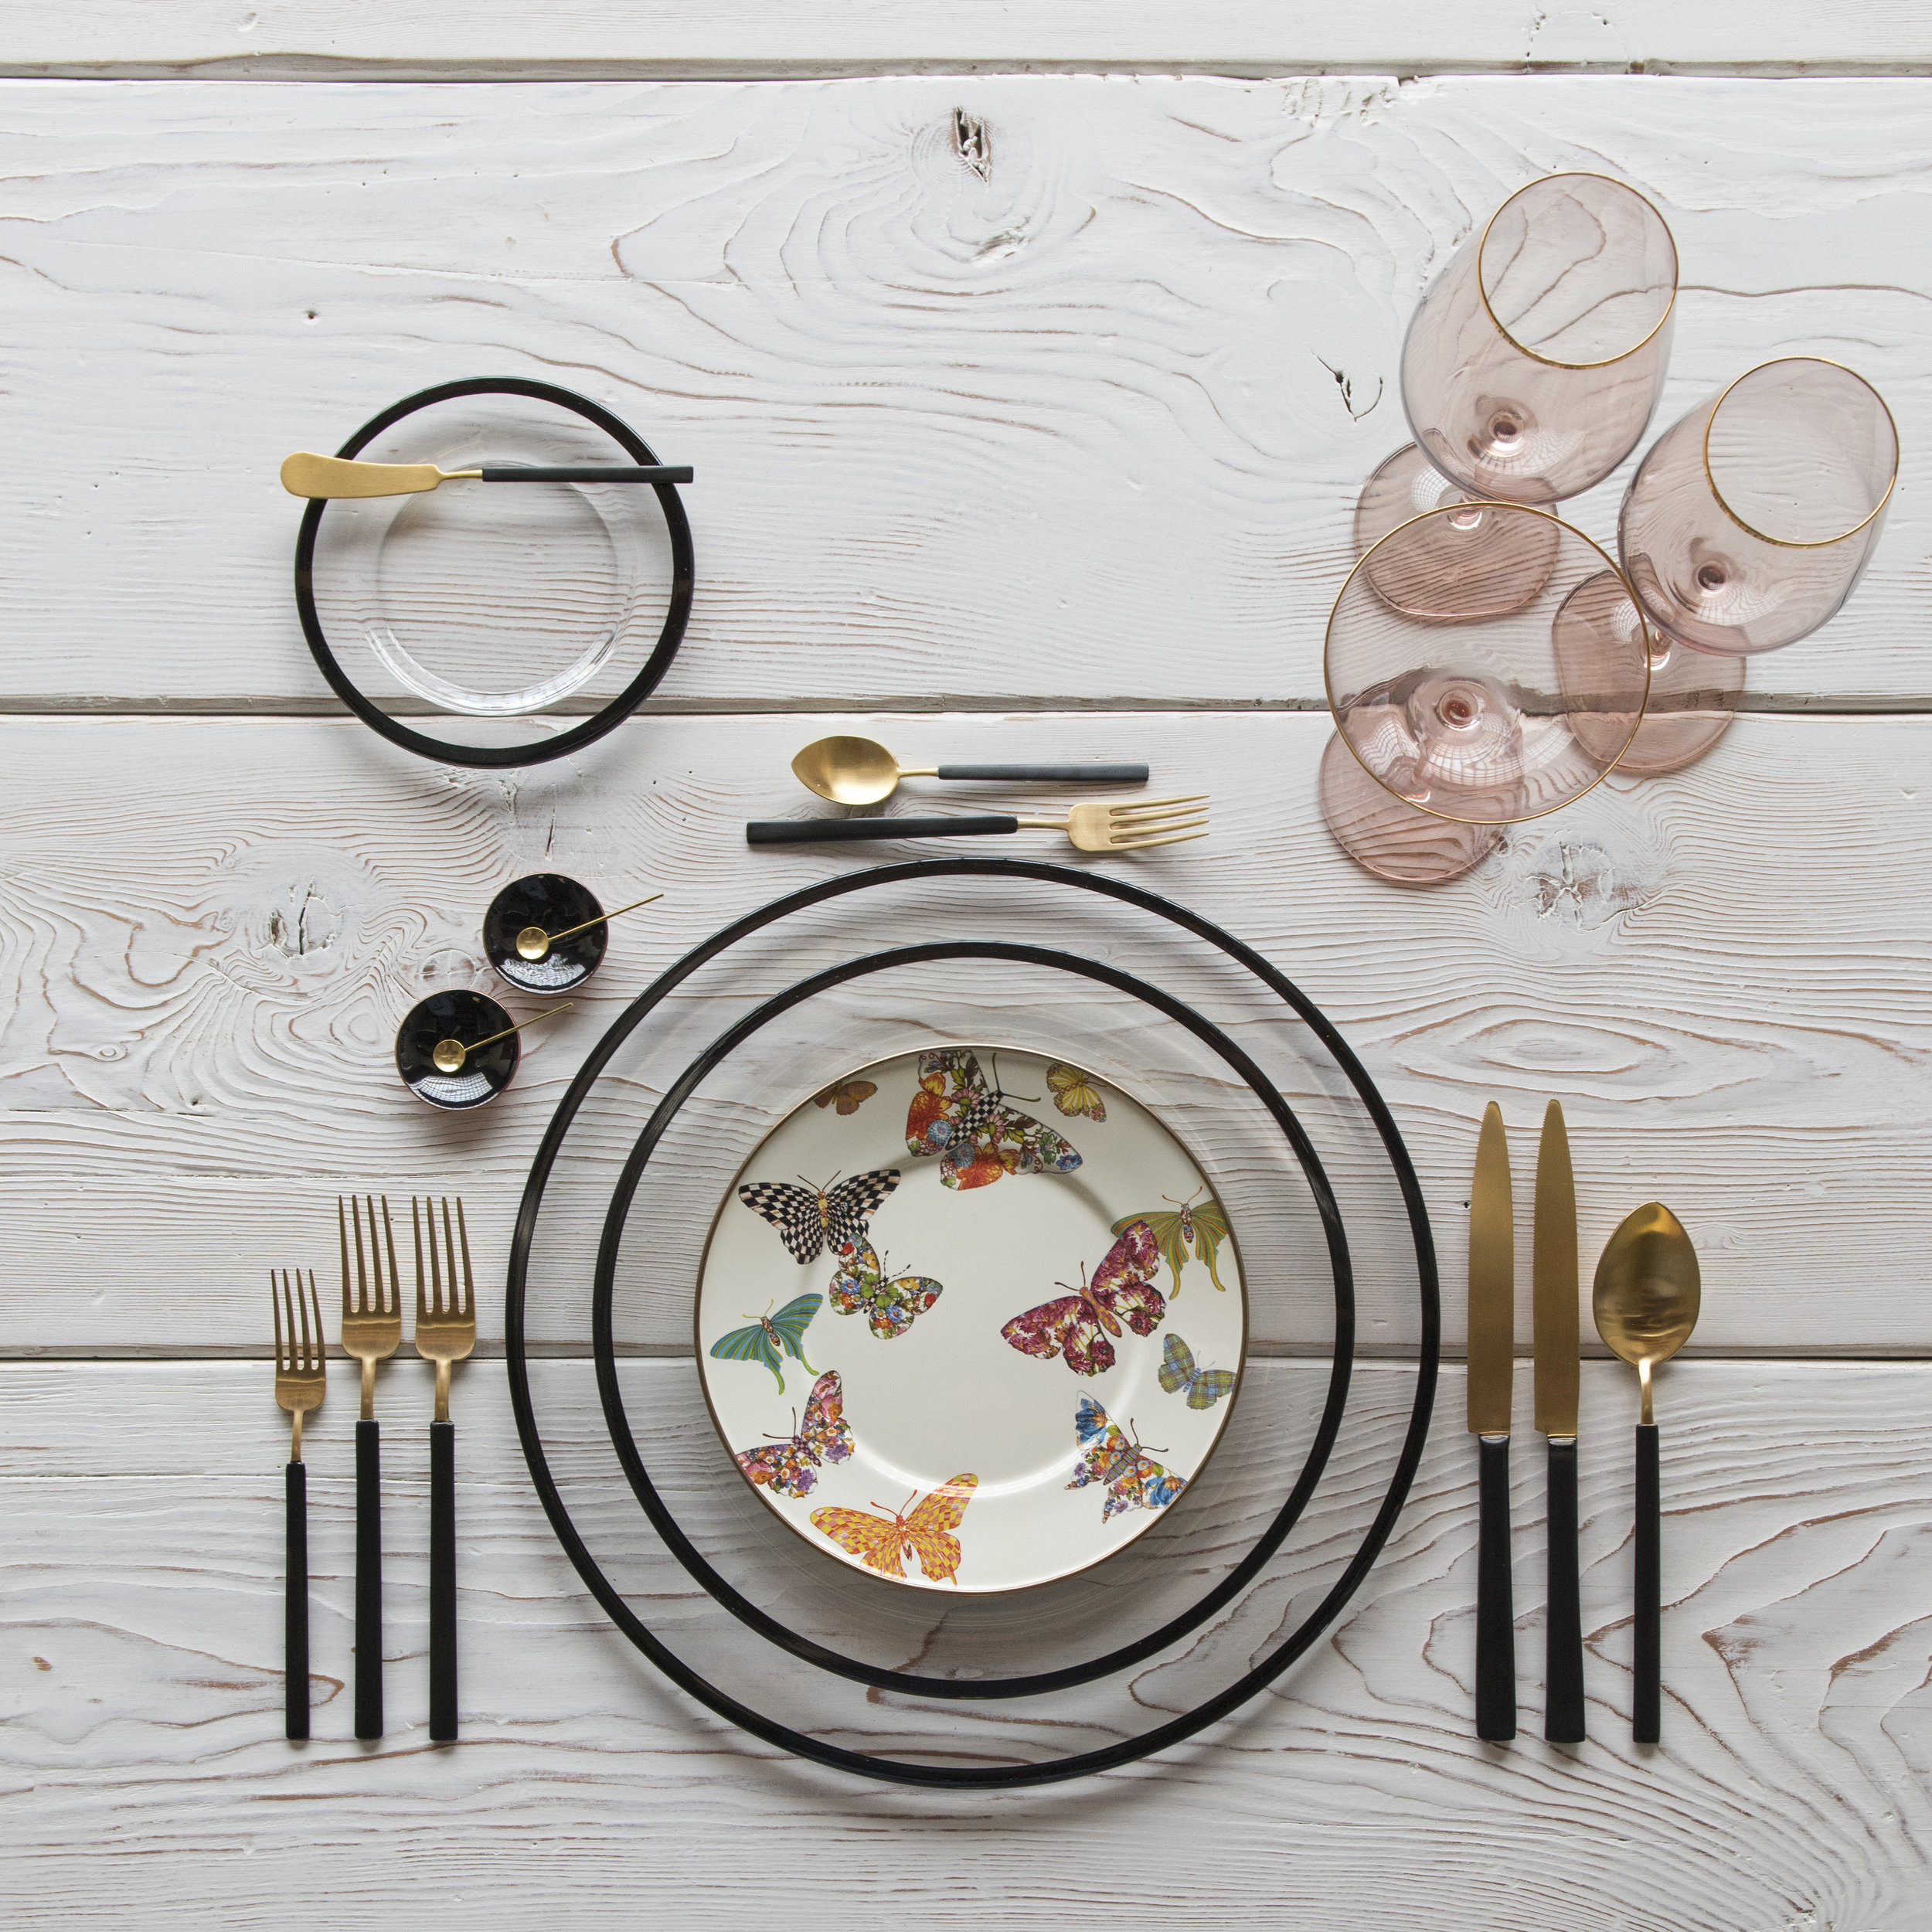 RENT: Halo Glass Chargers/Dinnerware in Black + MacKenzie-Childs Butterfly Garden Collection + Axel Flatware in Matte 24k Gold/Black + Bella 24k Gold Rimmed Stemware in Blush + Black Enamel Salt Cellars + Tiny Gold Spoons  SHOP: Halo Glass Chargers/Dinnerware in Black + Bella 24k Gold Rimmed Stemware in Blush + Black Enamel Salt Cellars + Tiny Gold Spoons